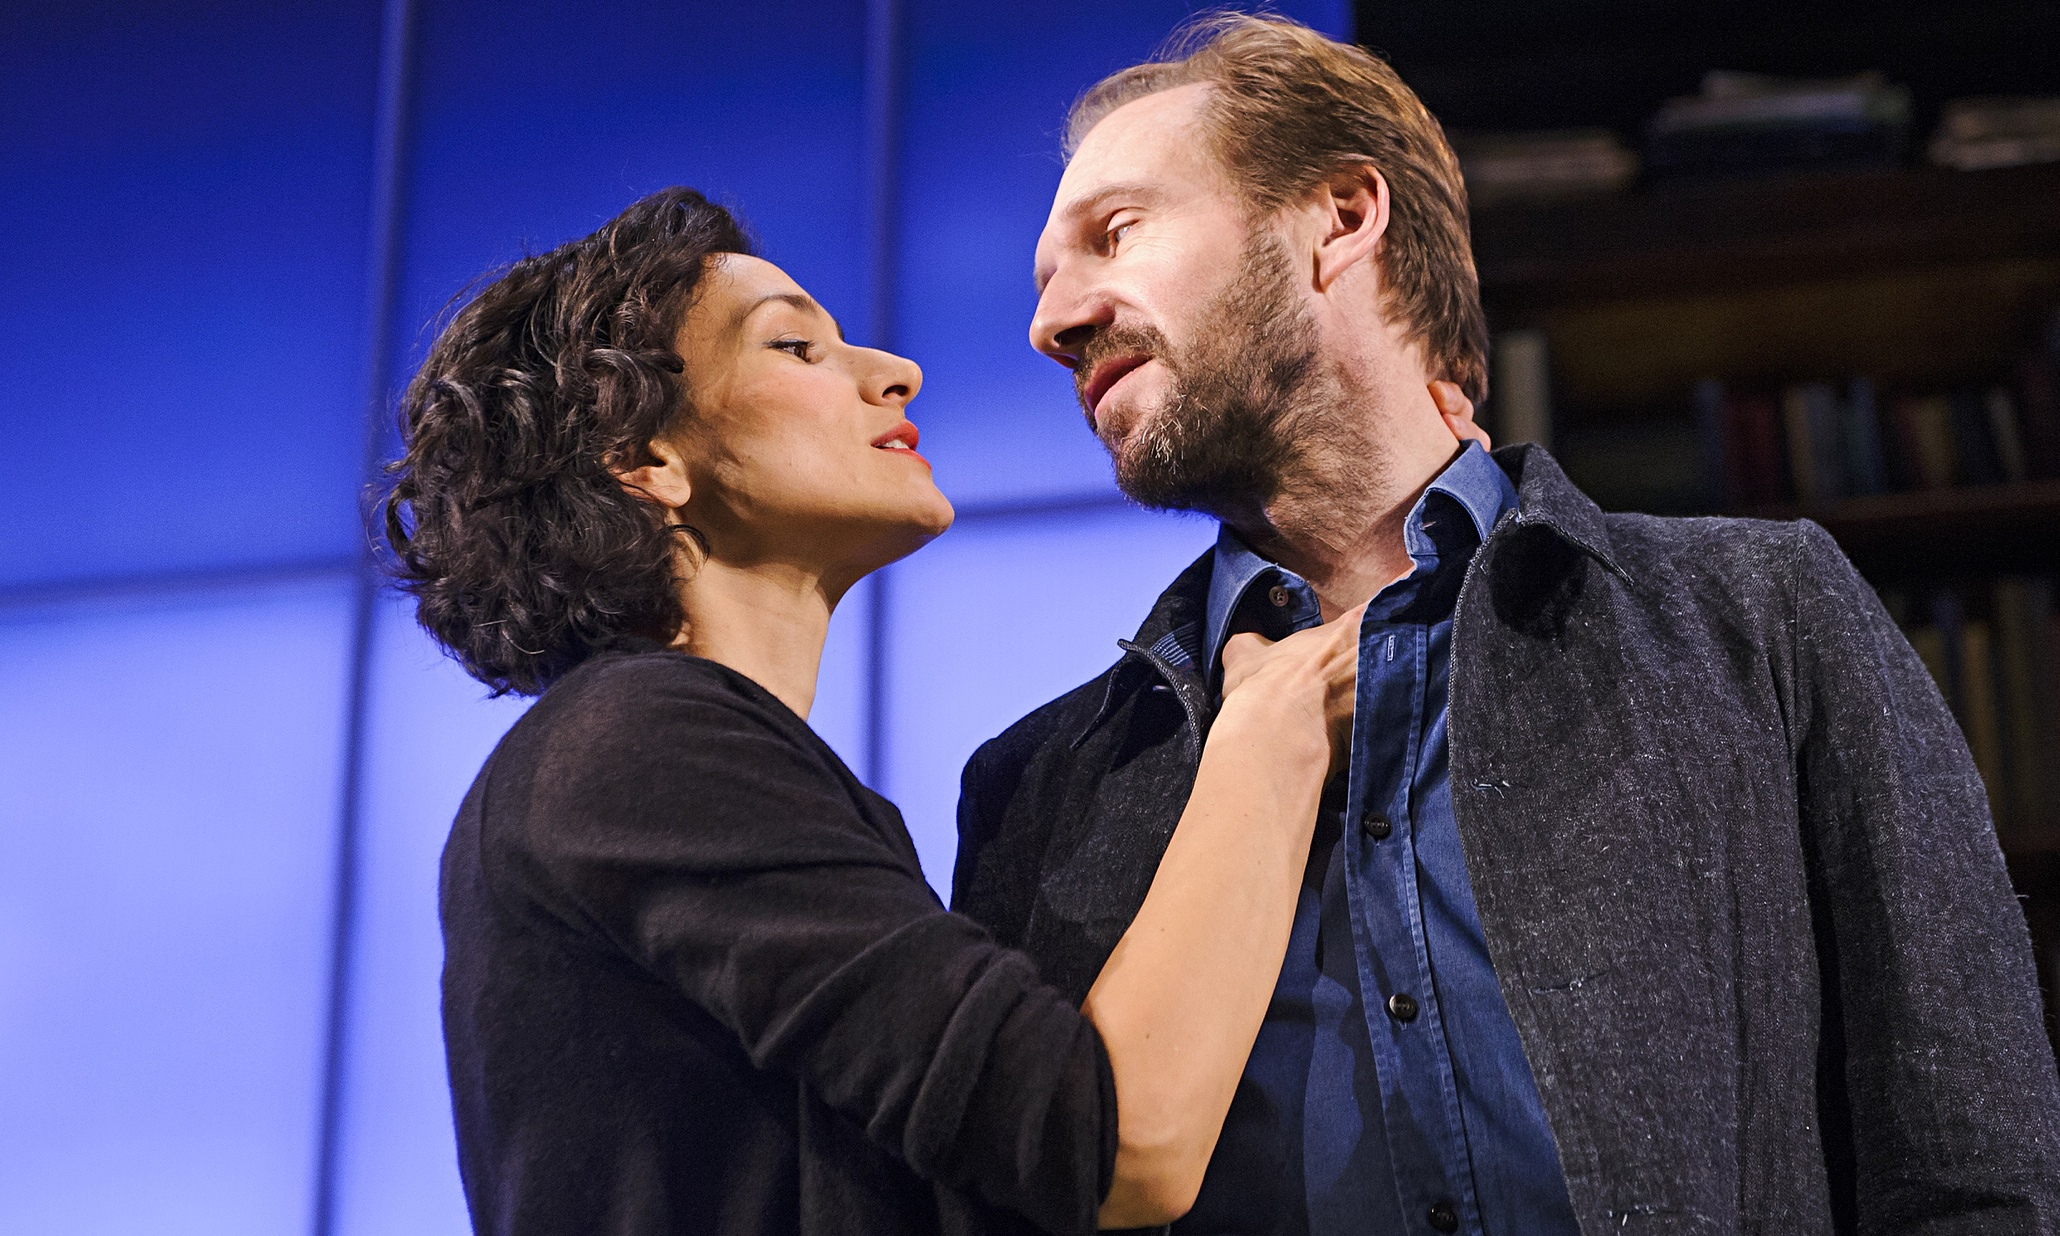 Ralph Fiennes and Indira Varma in the National Theatre's adaptation of Man and Superman